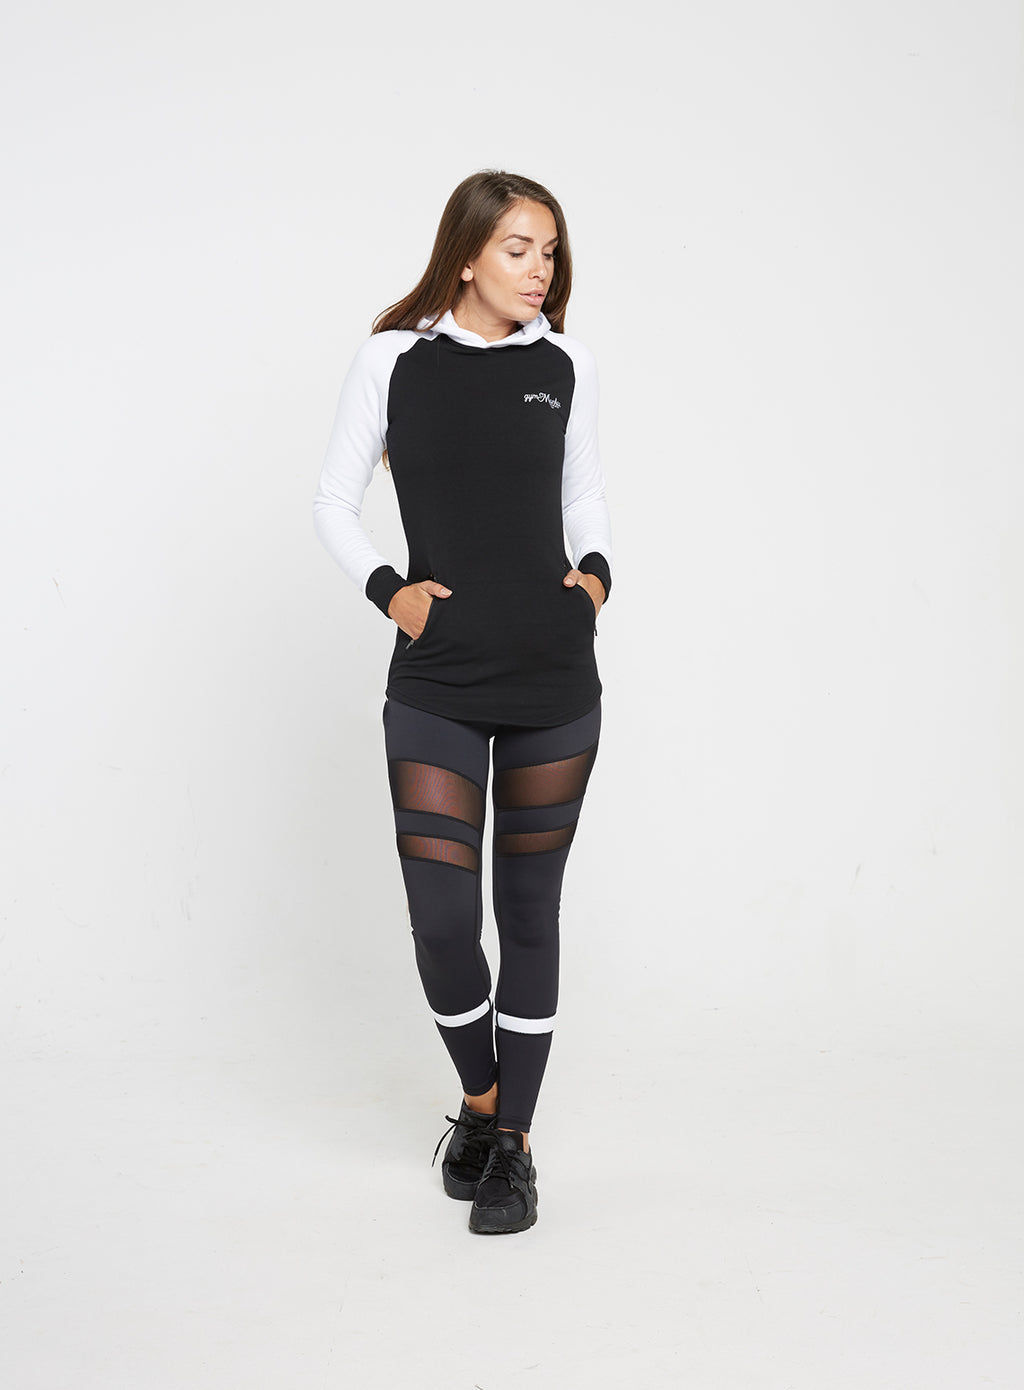 Gym Monkee - Ladies Black and White Hoodie FRONT FULL